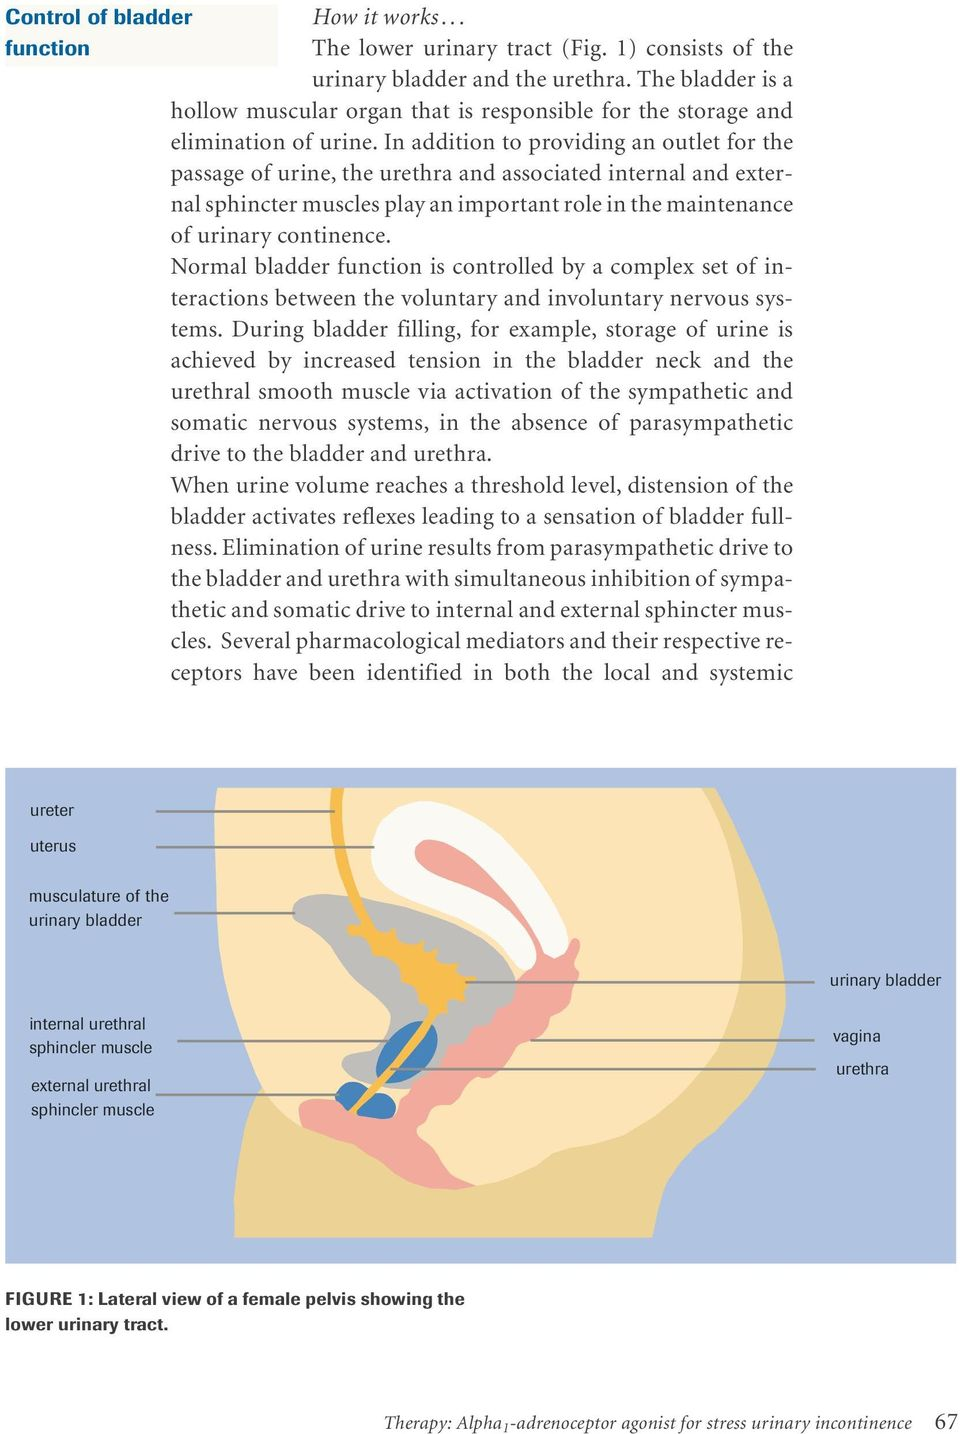 In addition to providing an outlet for the passage of urine, the urethra and associated internal and external sphincter muscles play an important role in the maintenance of urinary continence.